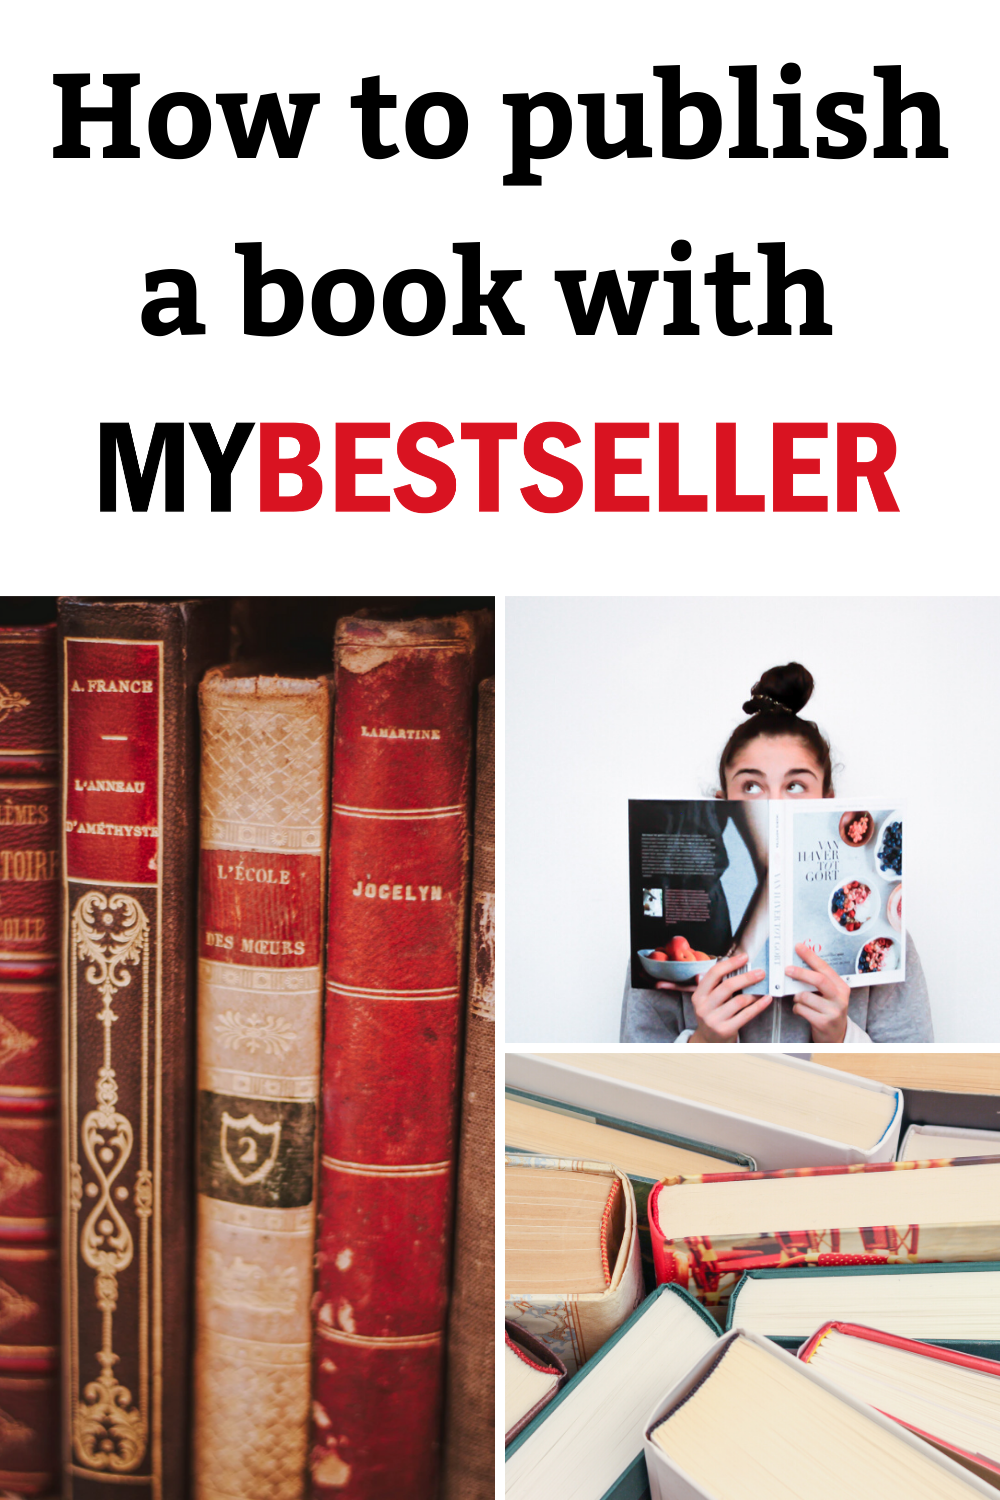 How To Publish A Book With Mybestseller In 2020 Self Publishing Book Publishing Books